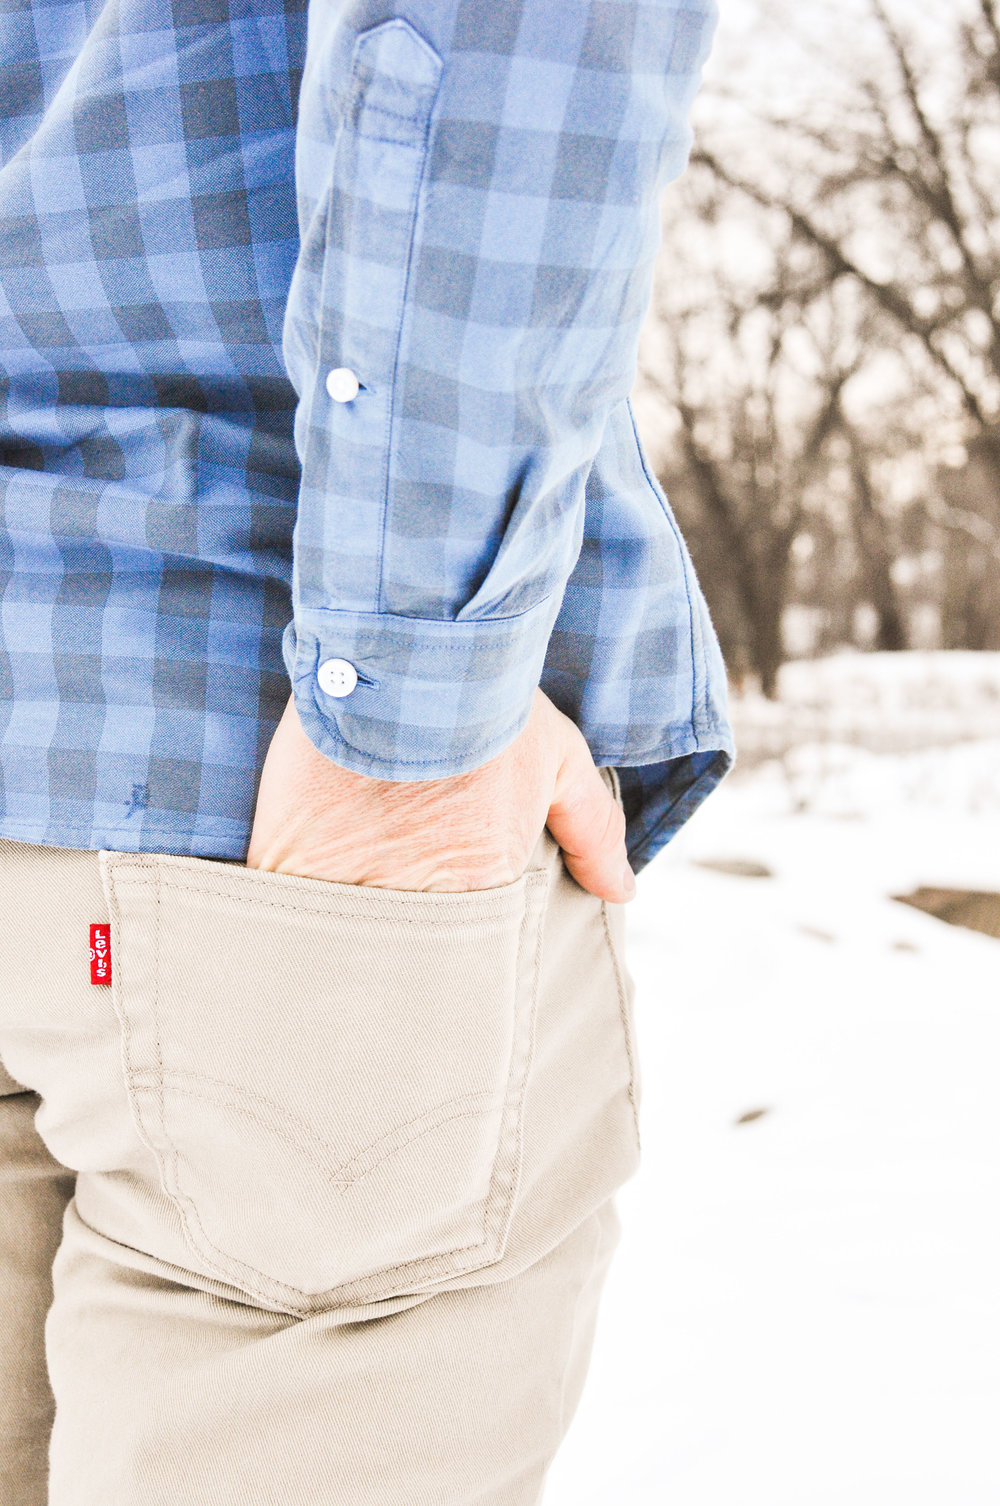 Man with hand in back pocket